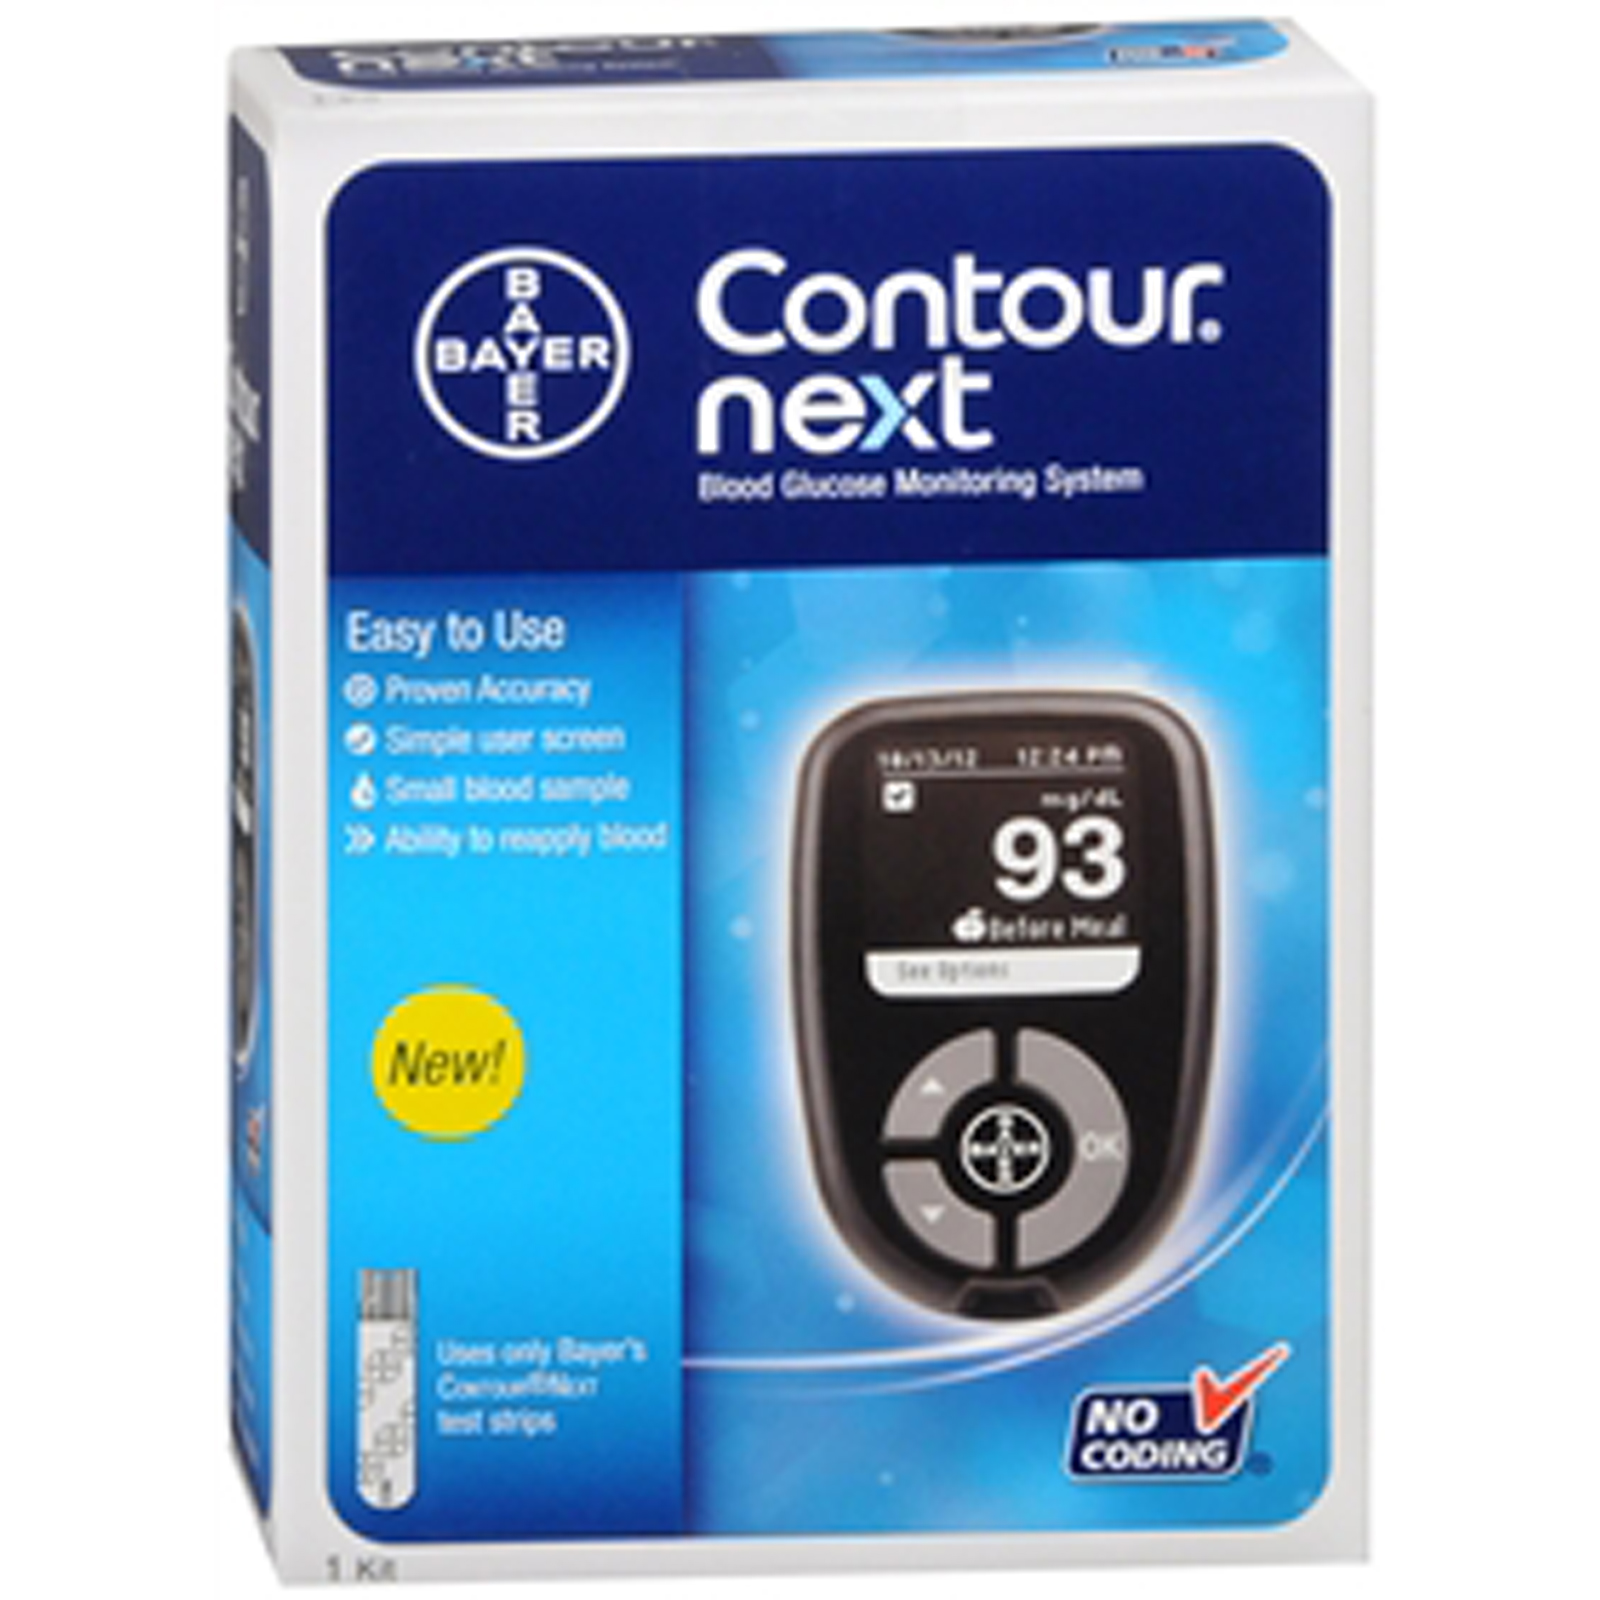 Contour Next Blood Glucose Monitoring System - 1 each